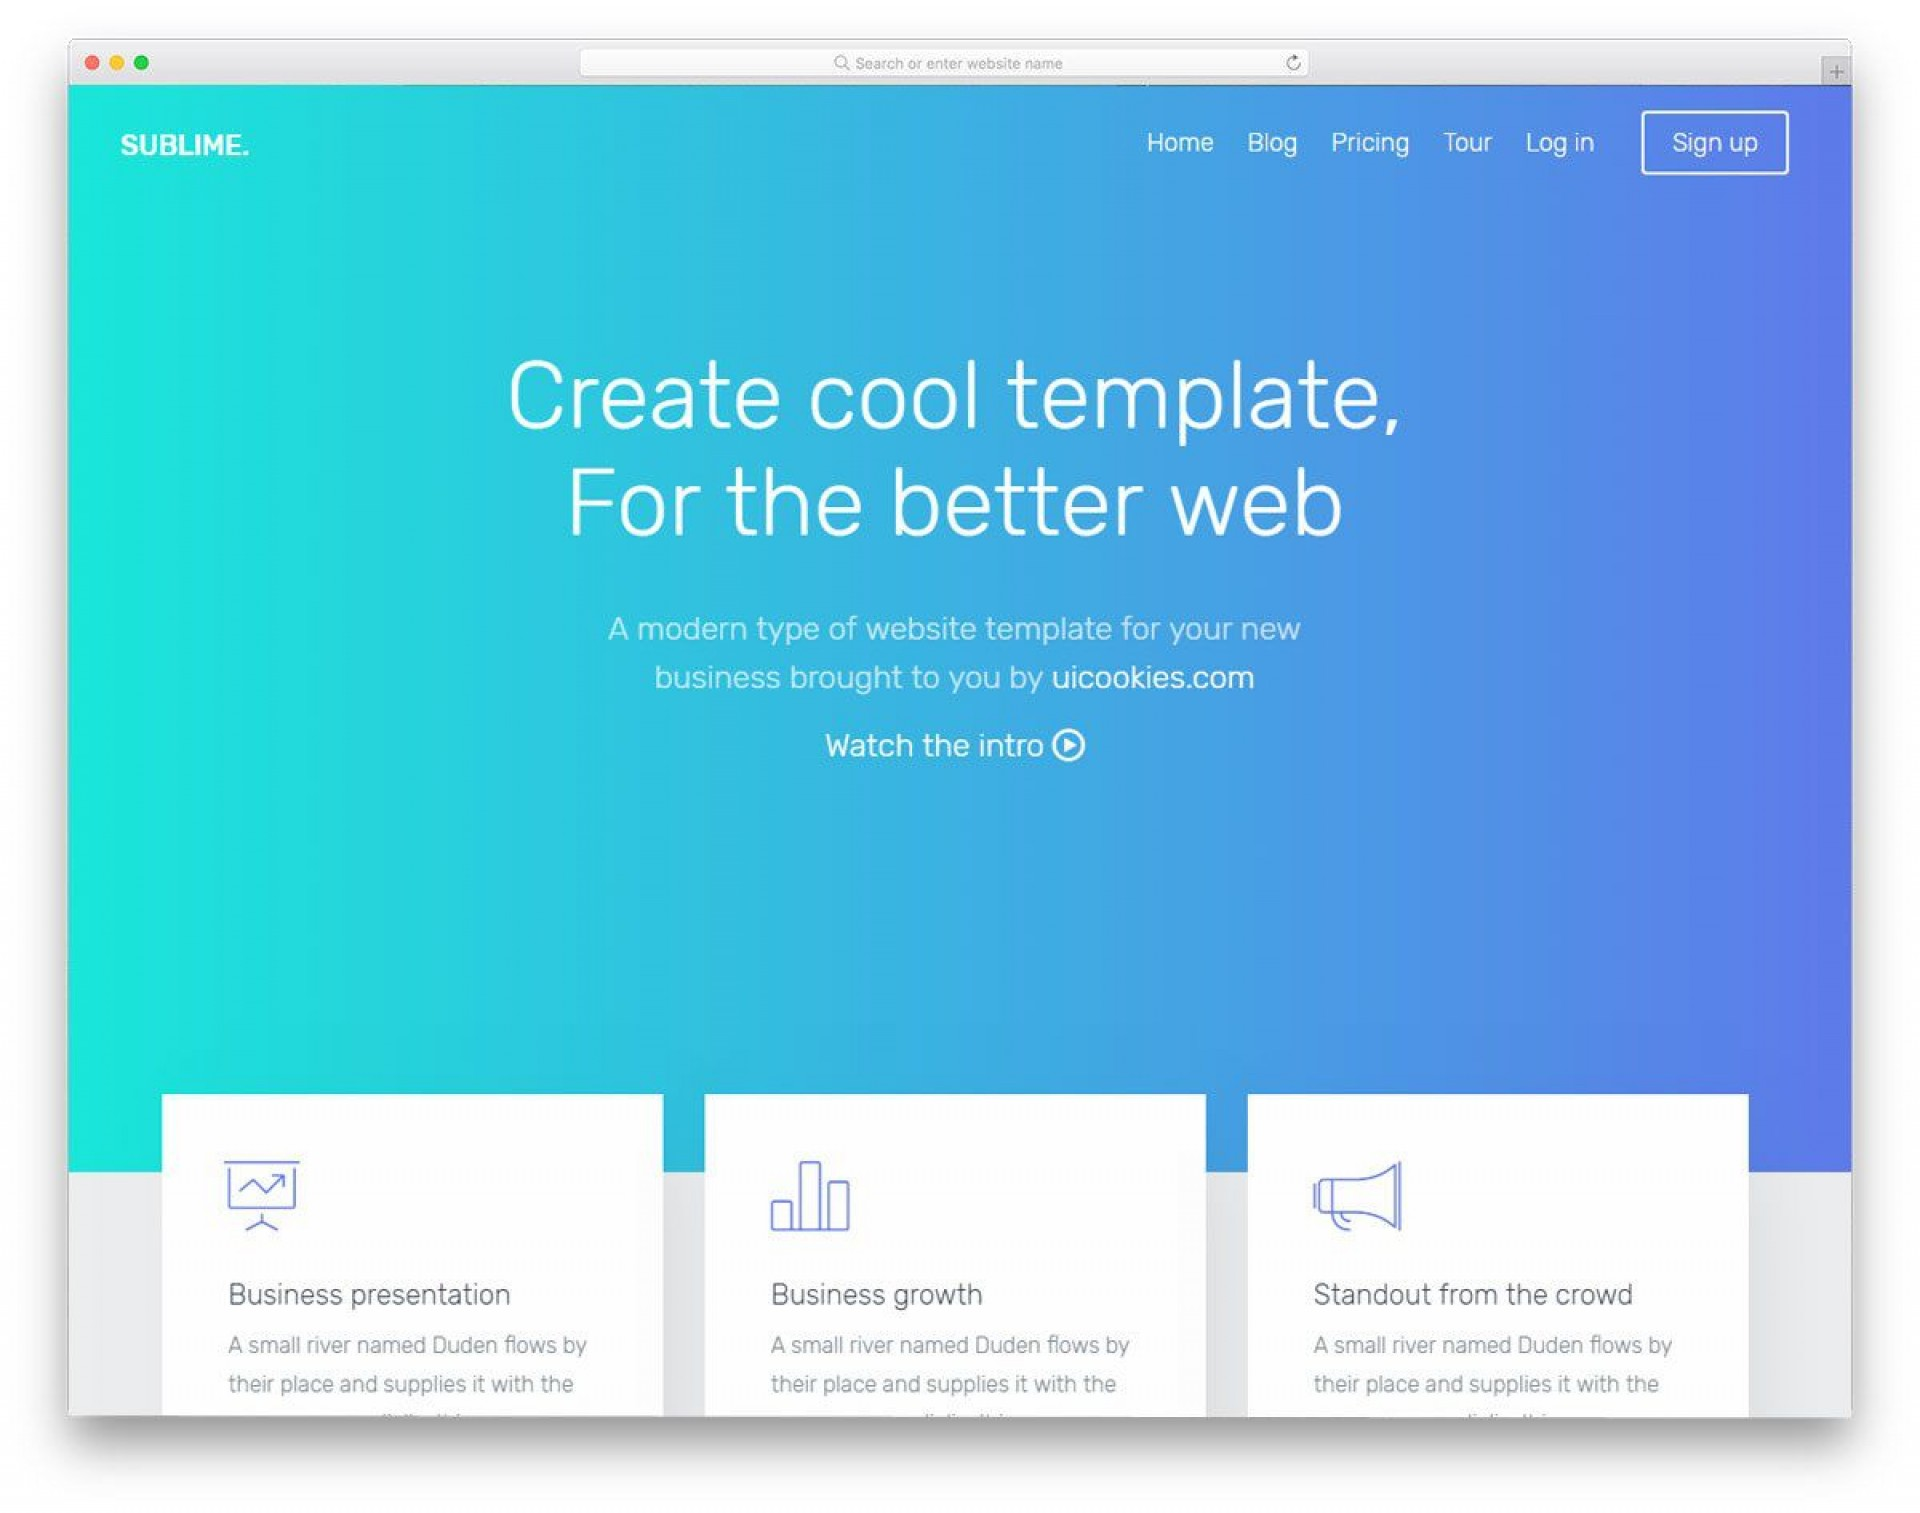 009 Marvelou Free Landing Page Template Bootstrap Photo  3 Html5 20191920